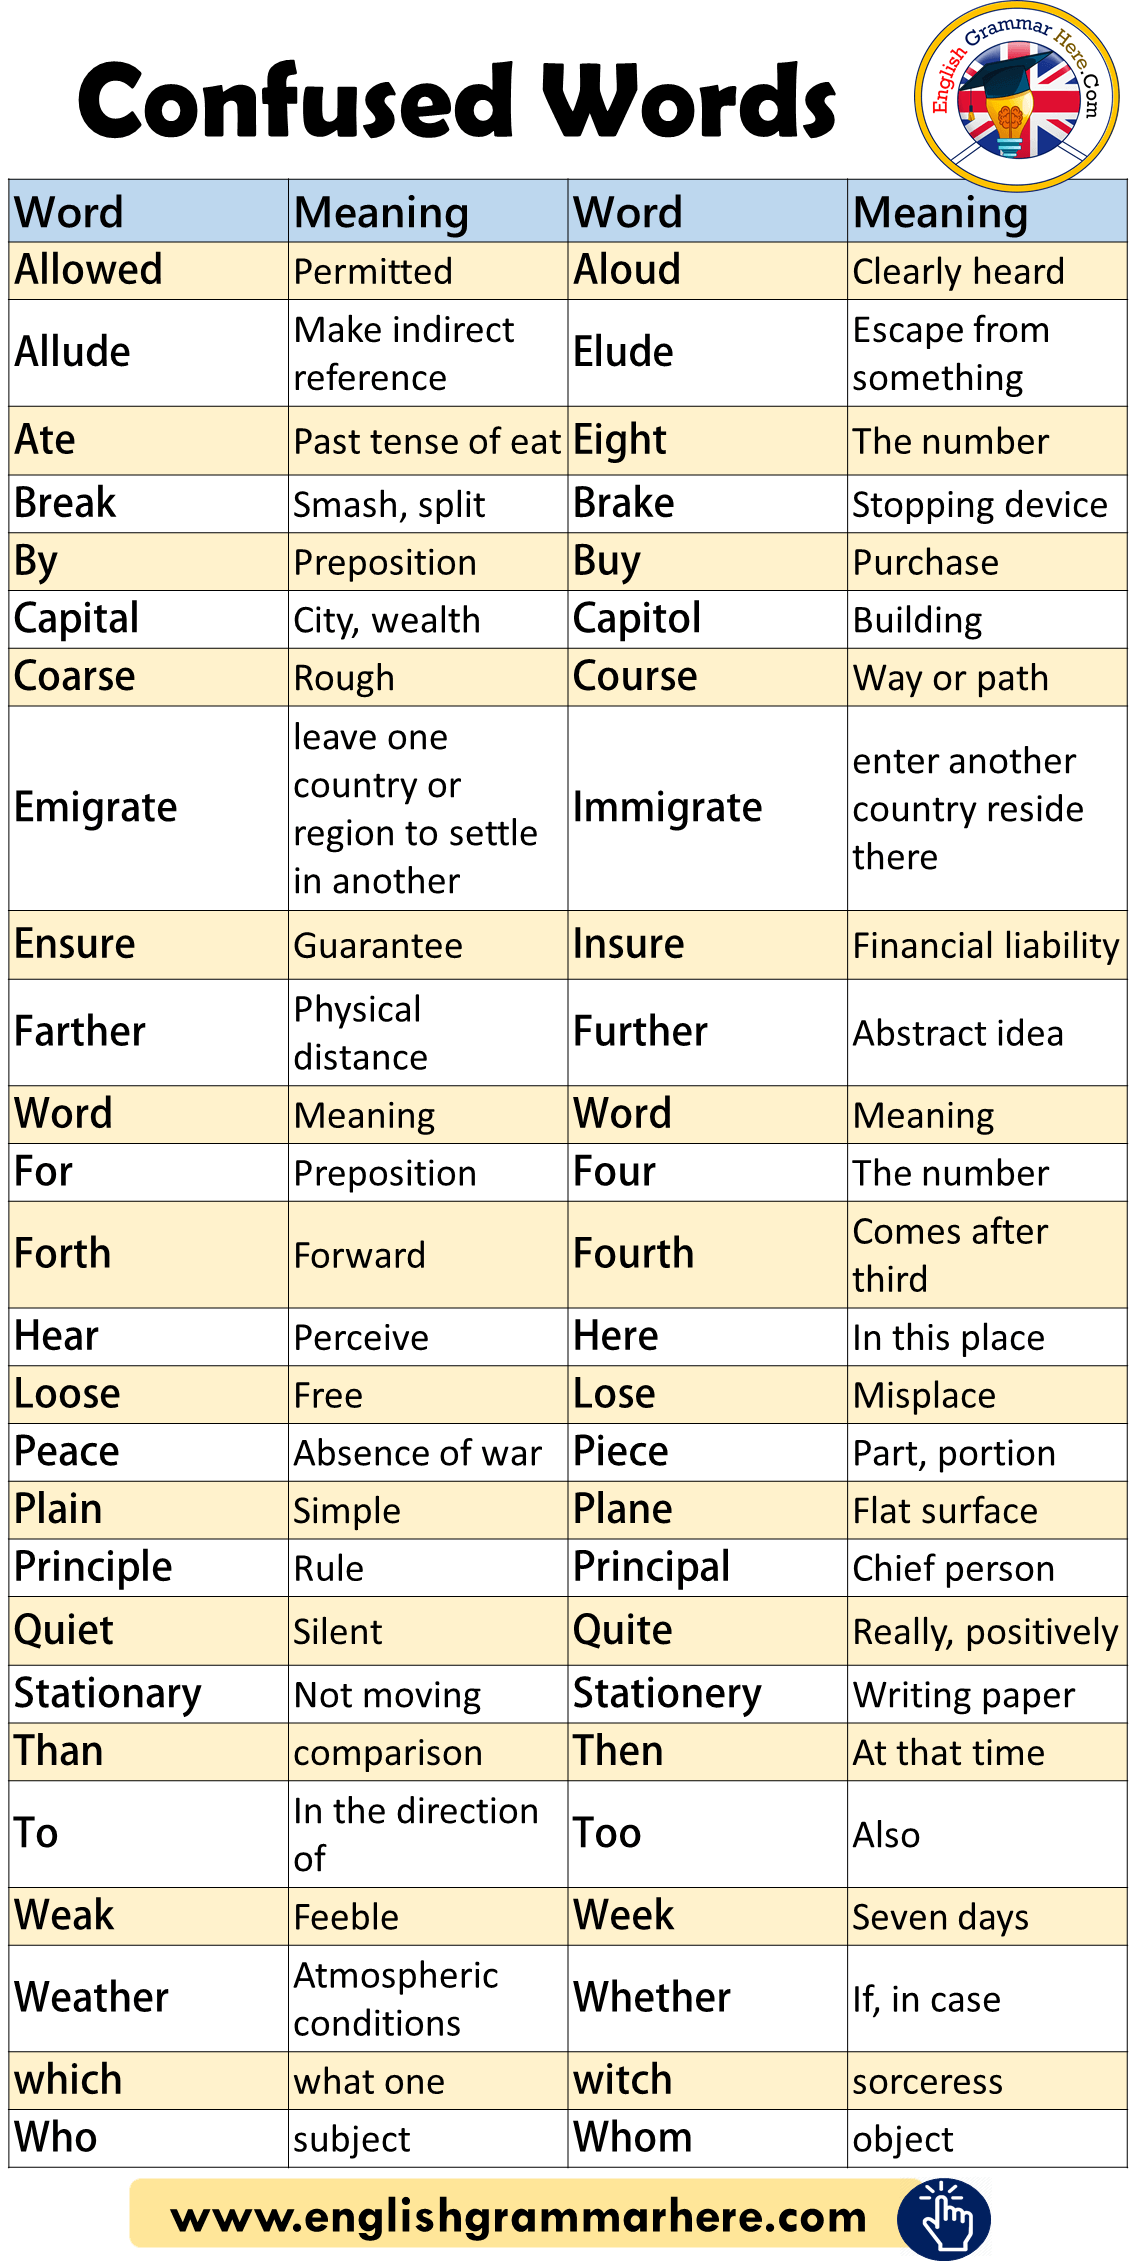 English Confused Words List and Meaning